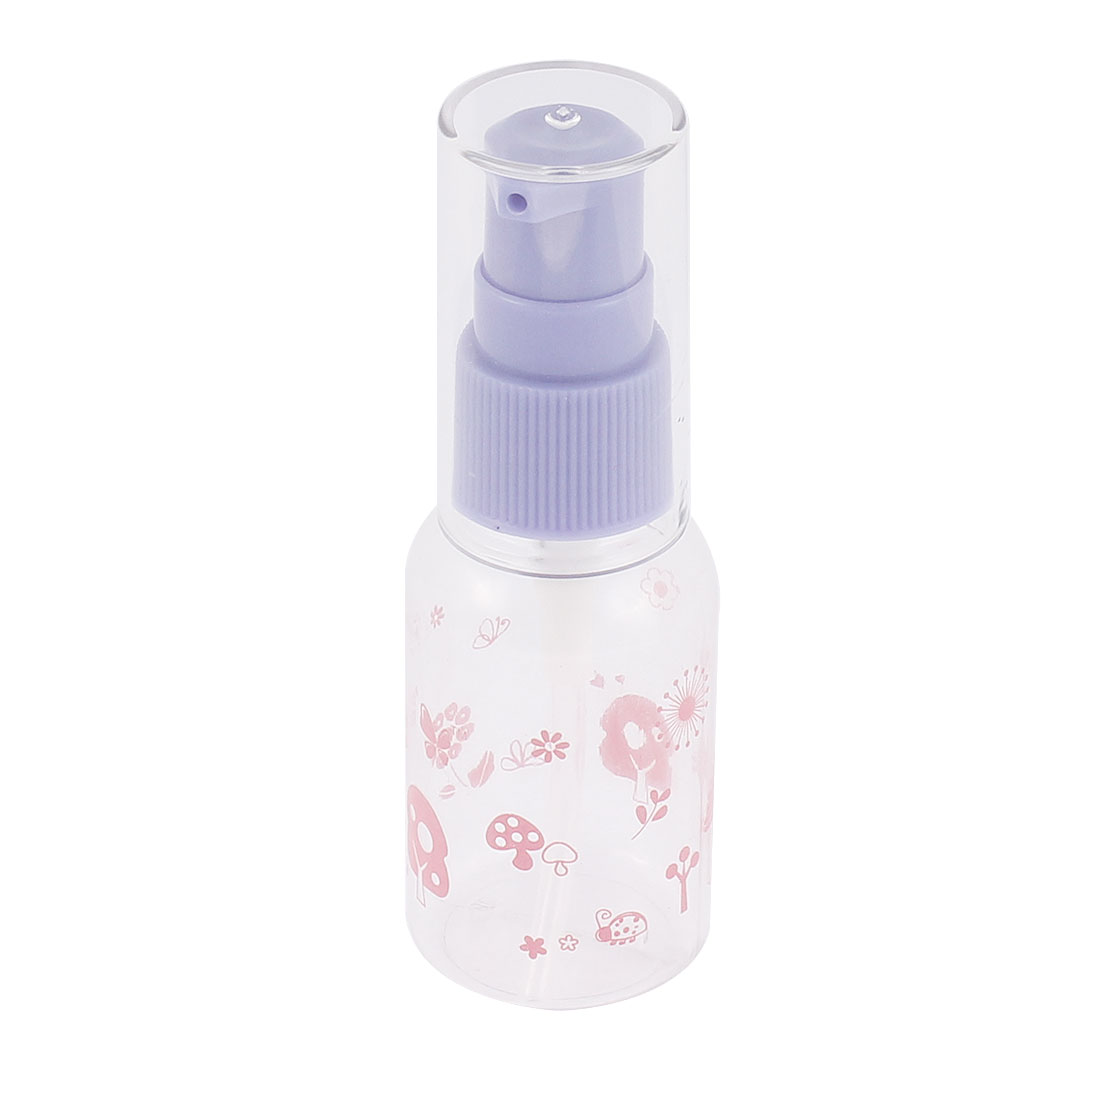 Plastic Floral Pattern Cosmetic Liquid Holder Spray Bottle 30ml Purple